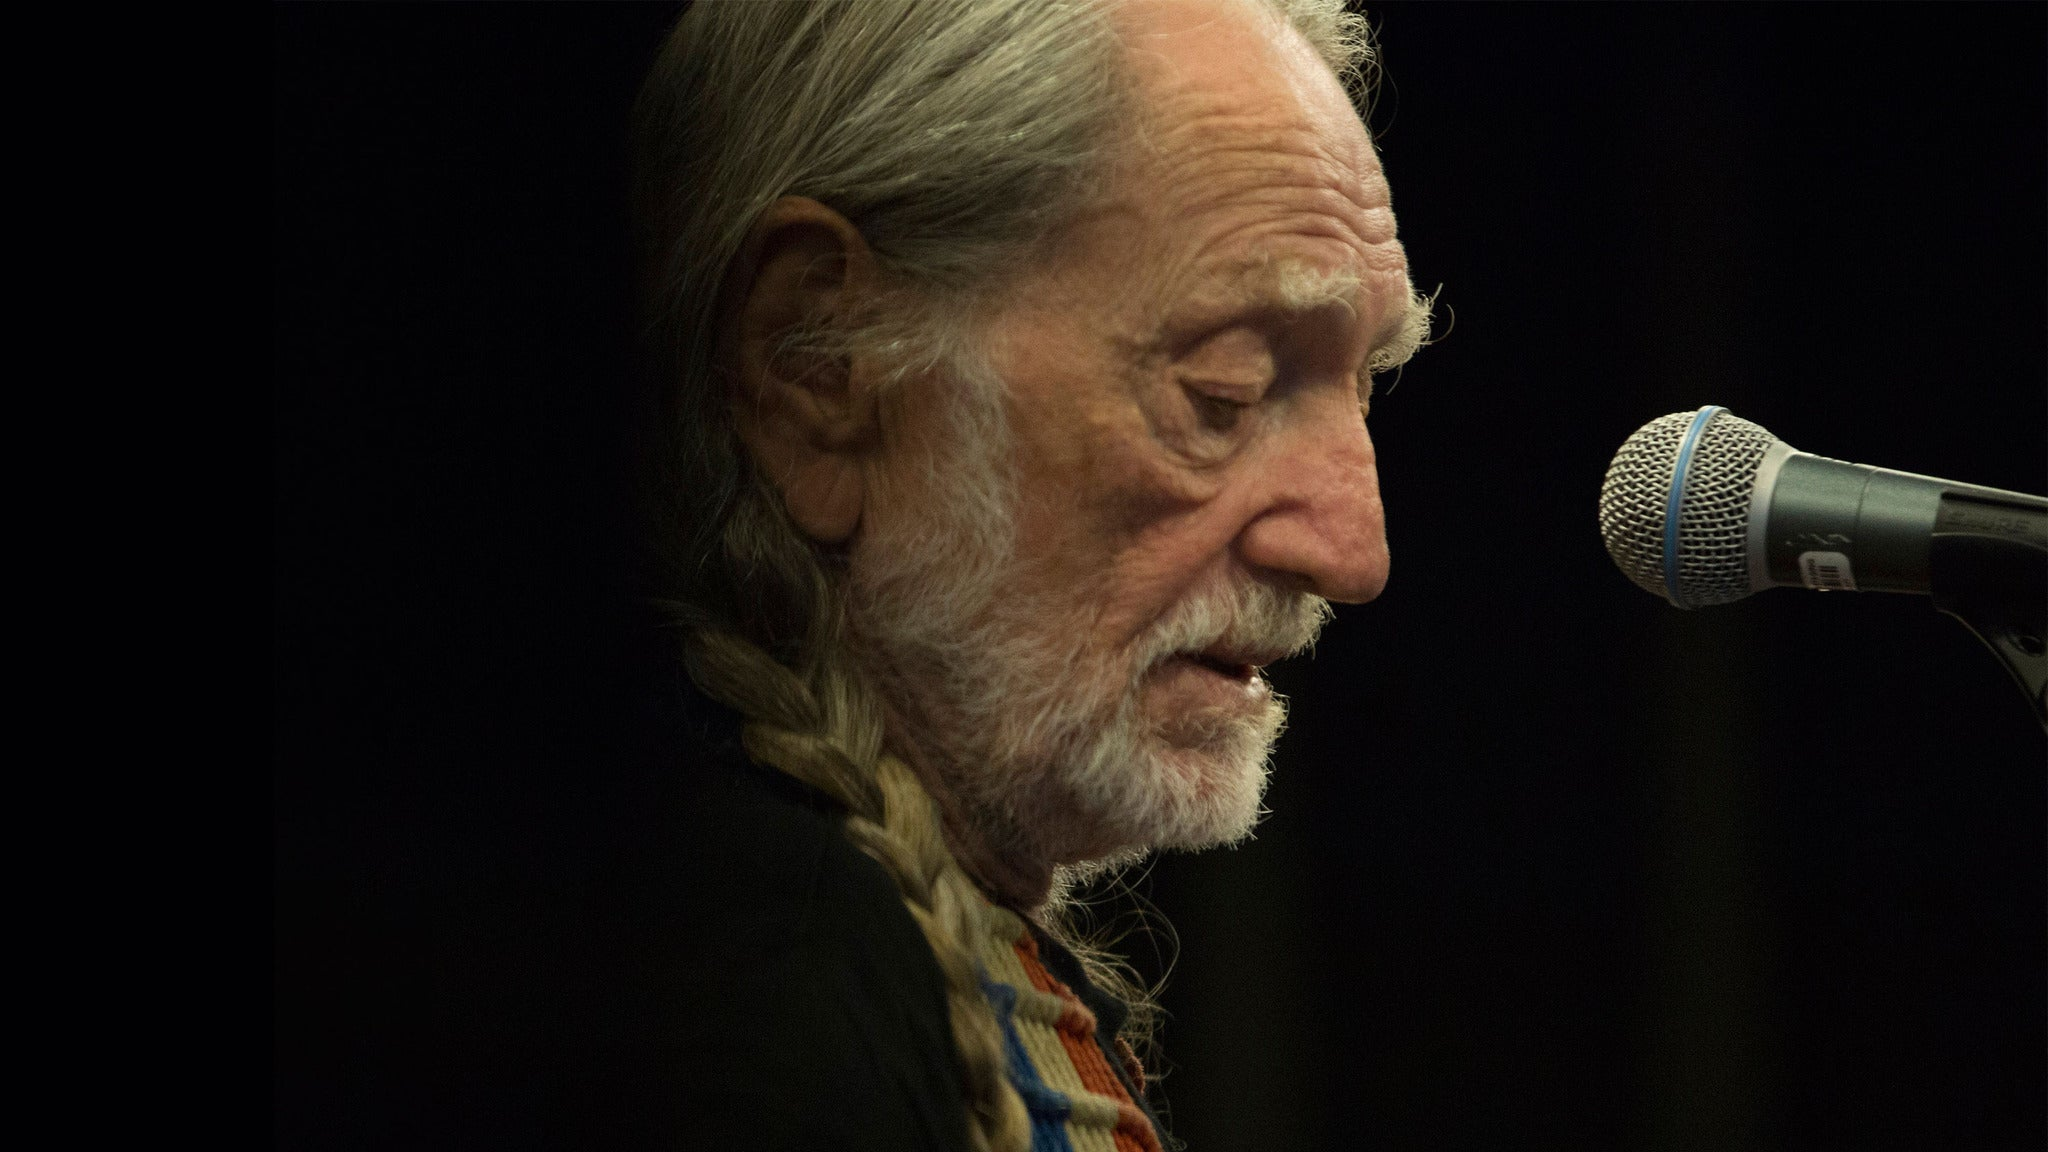 Willie Nelson - Murphys, CA 95247